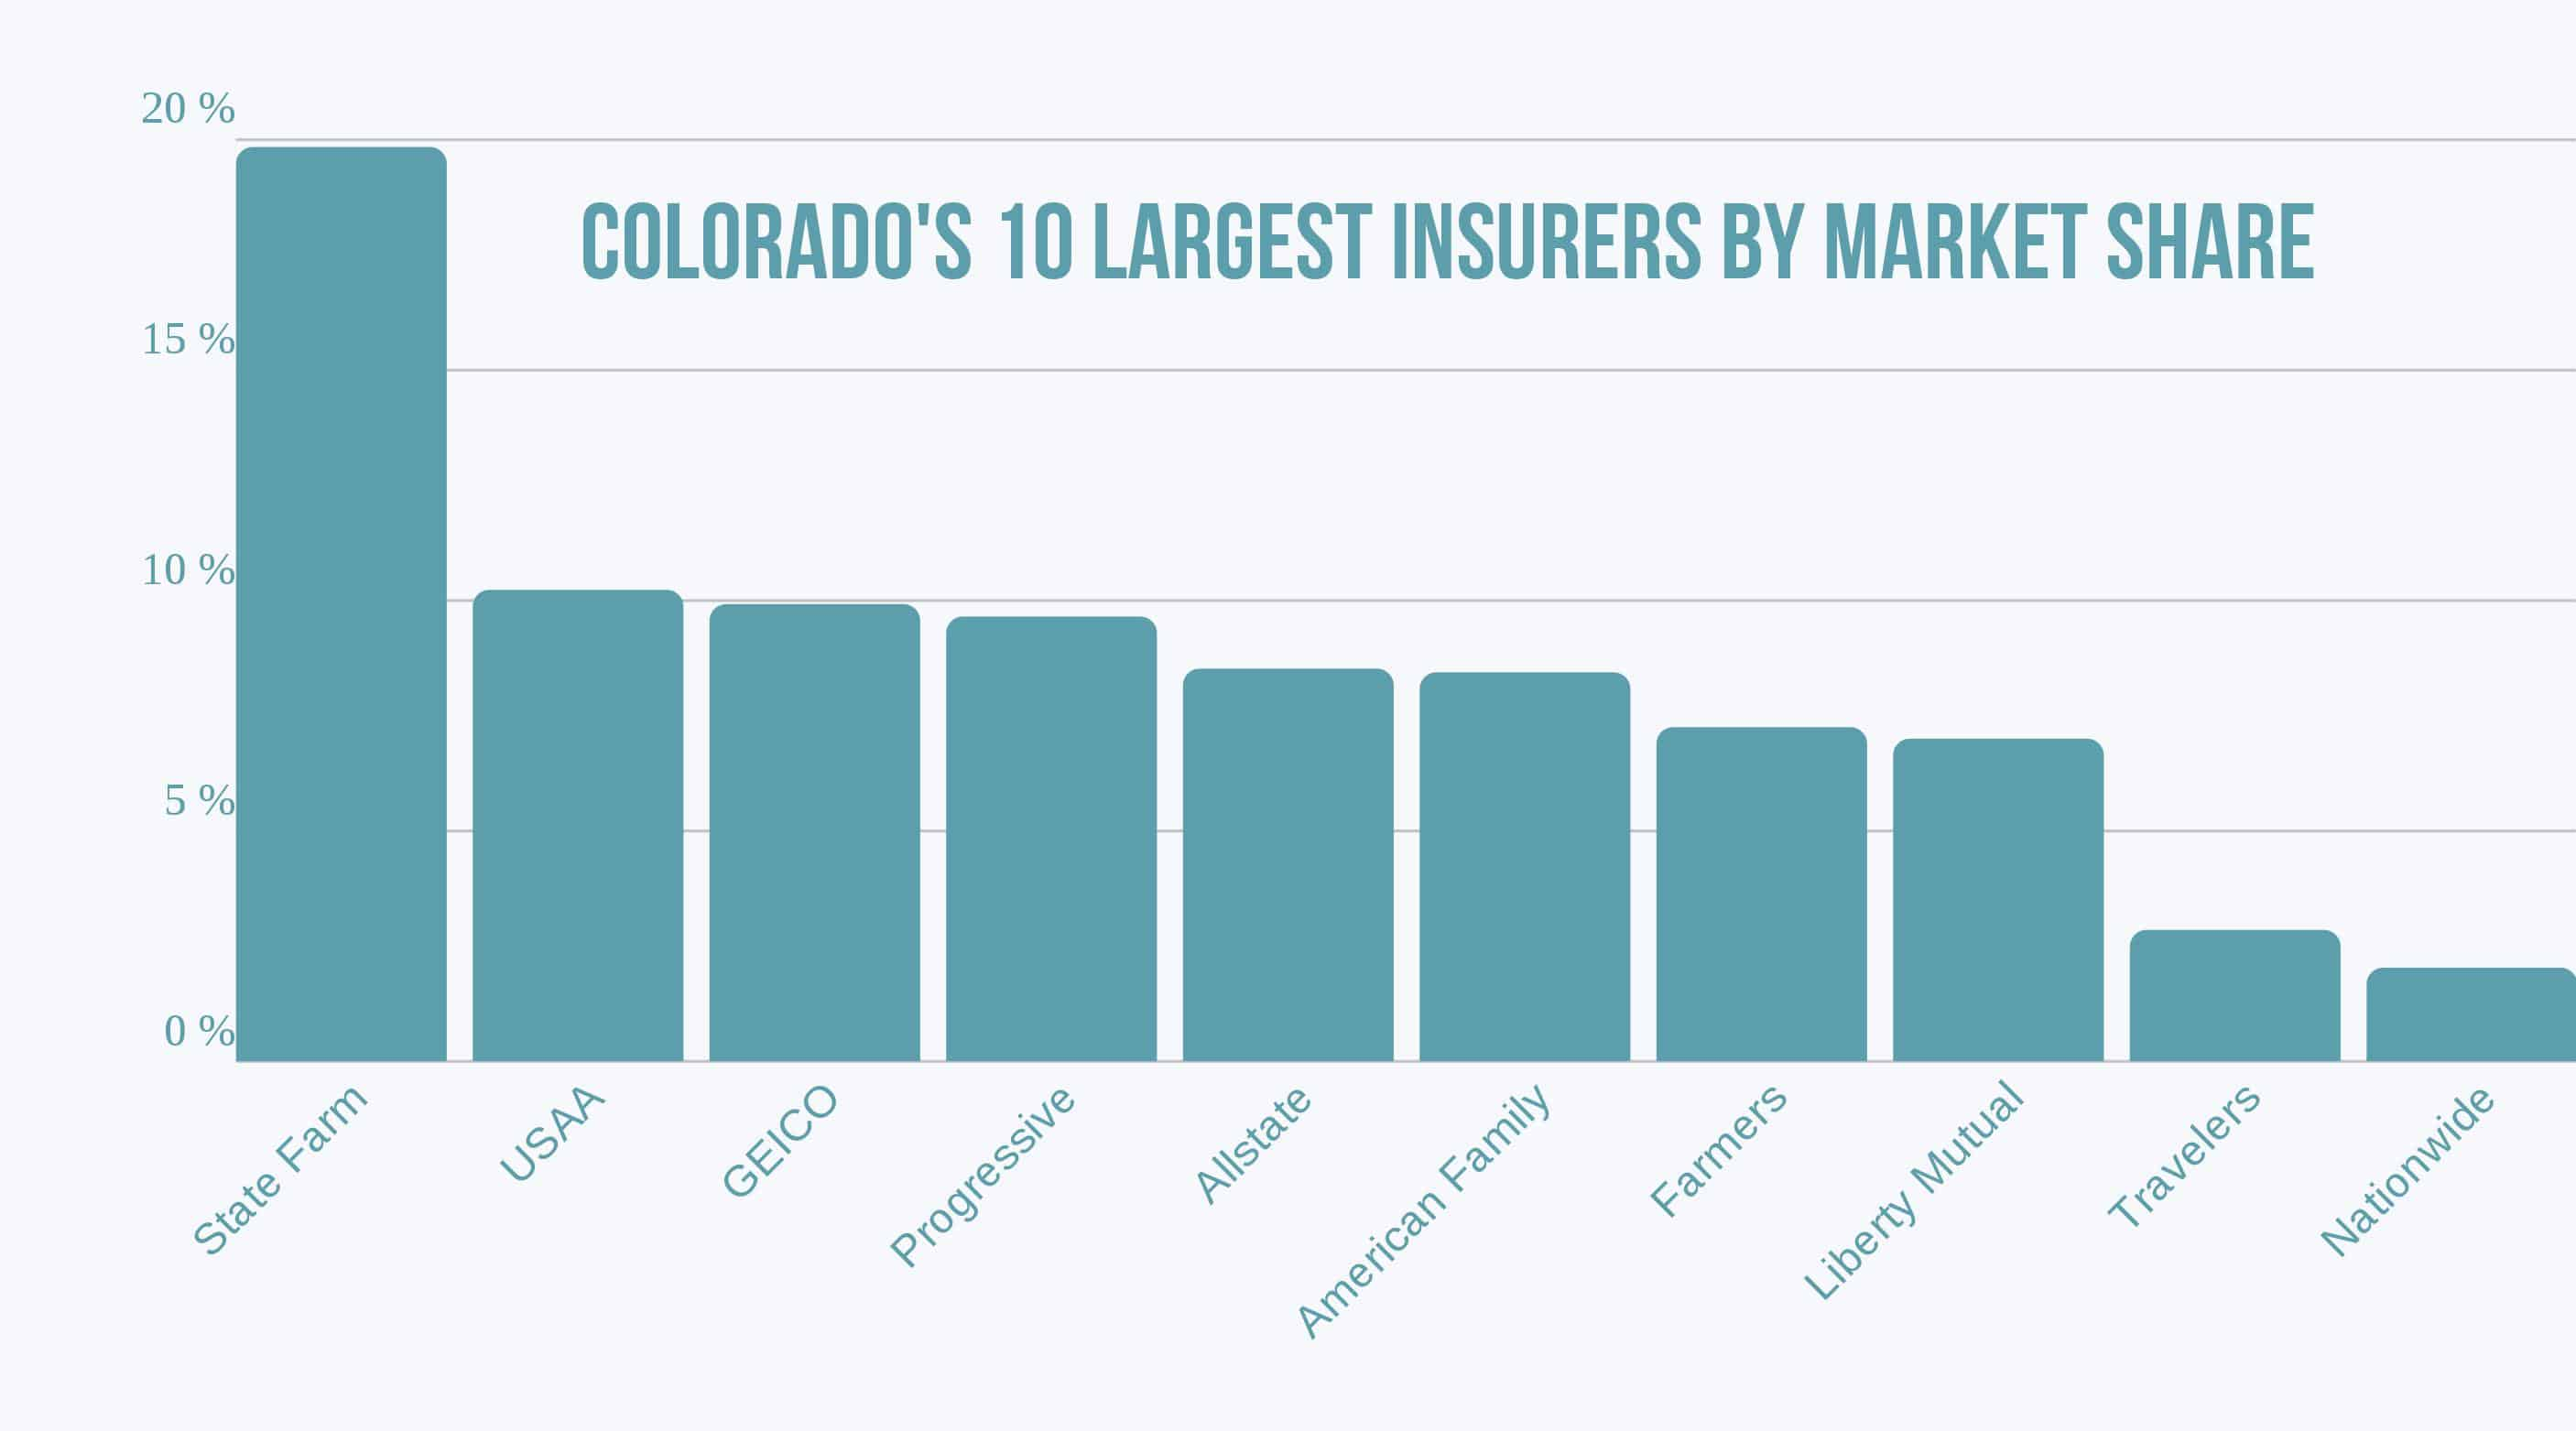 Bar chart of Colorado's 10 largest insurers by market share